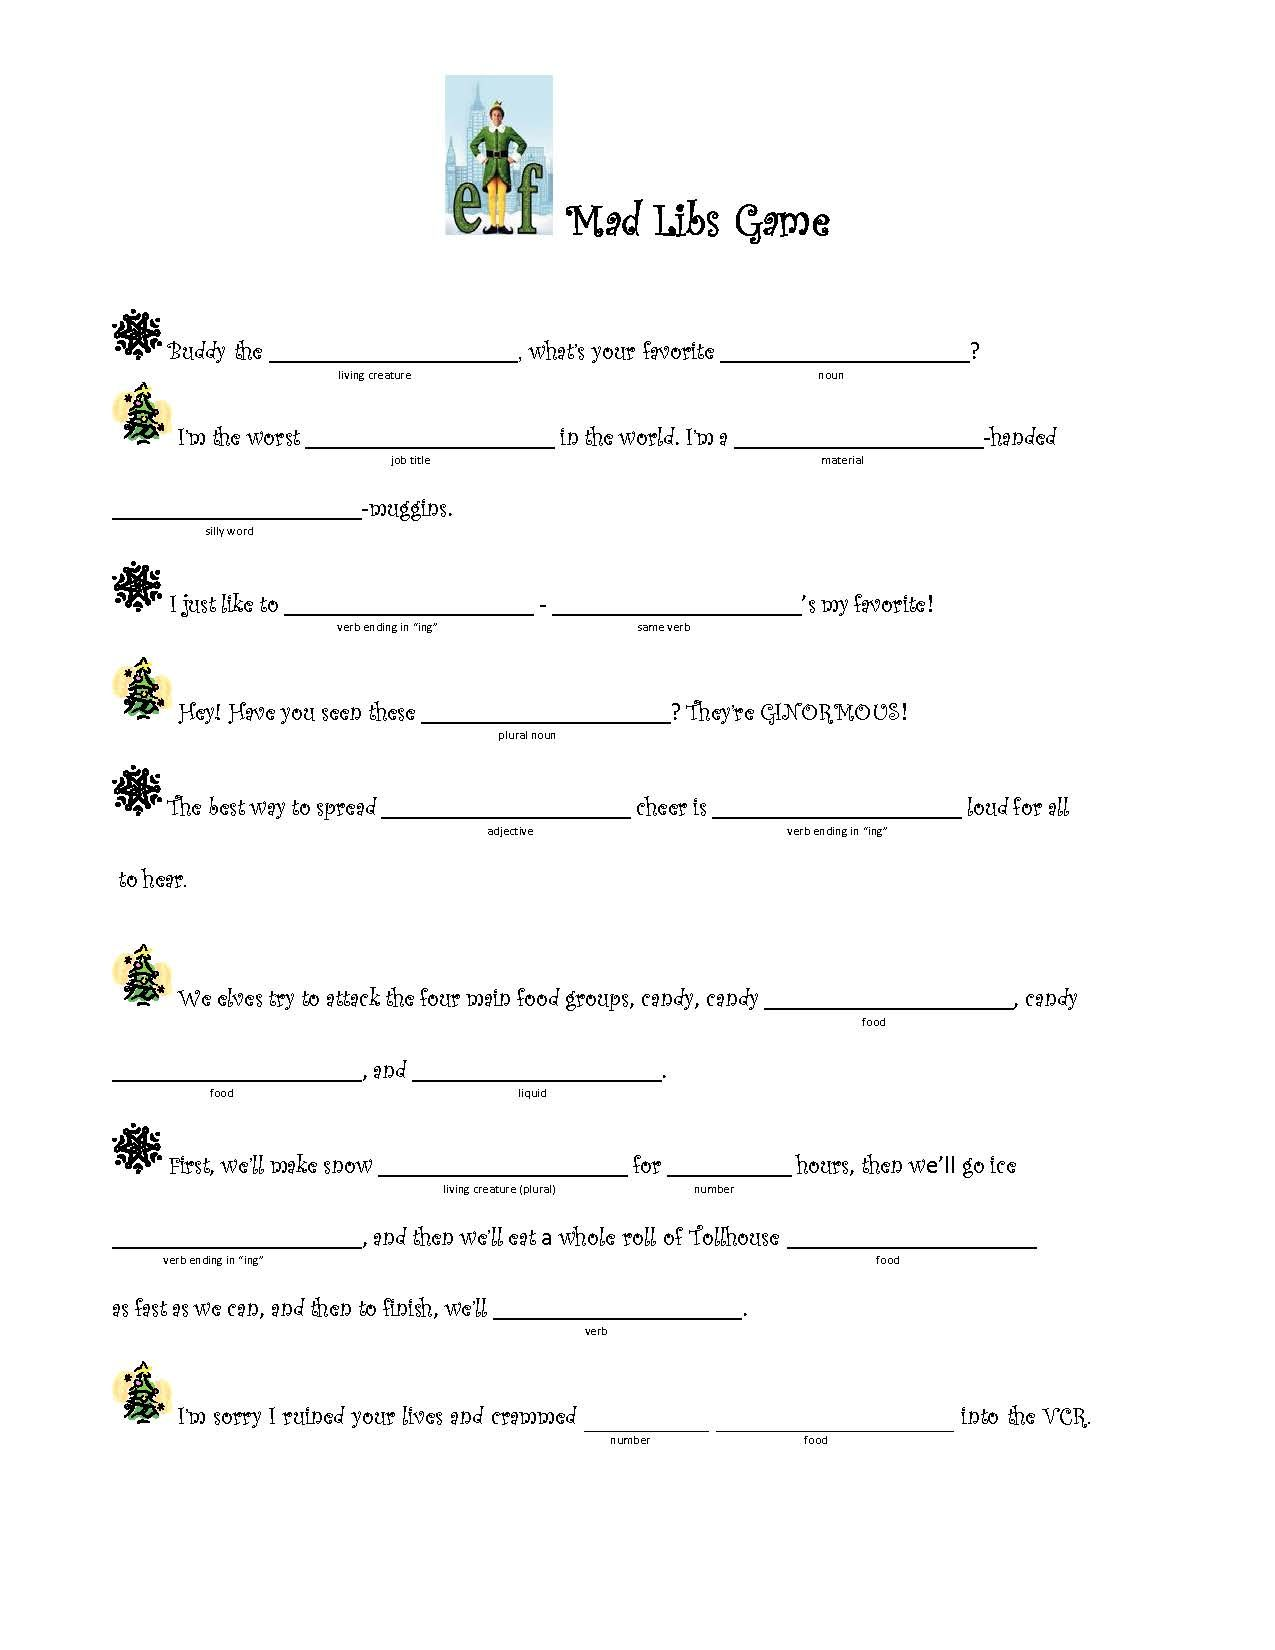 Fun Mad Libs Game I Created Using Quotes From The Buddy The Elf Movie